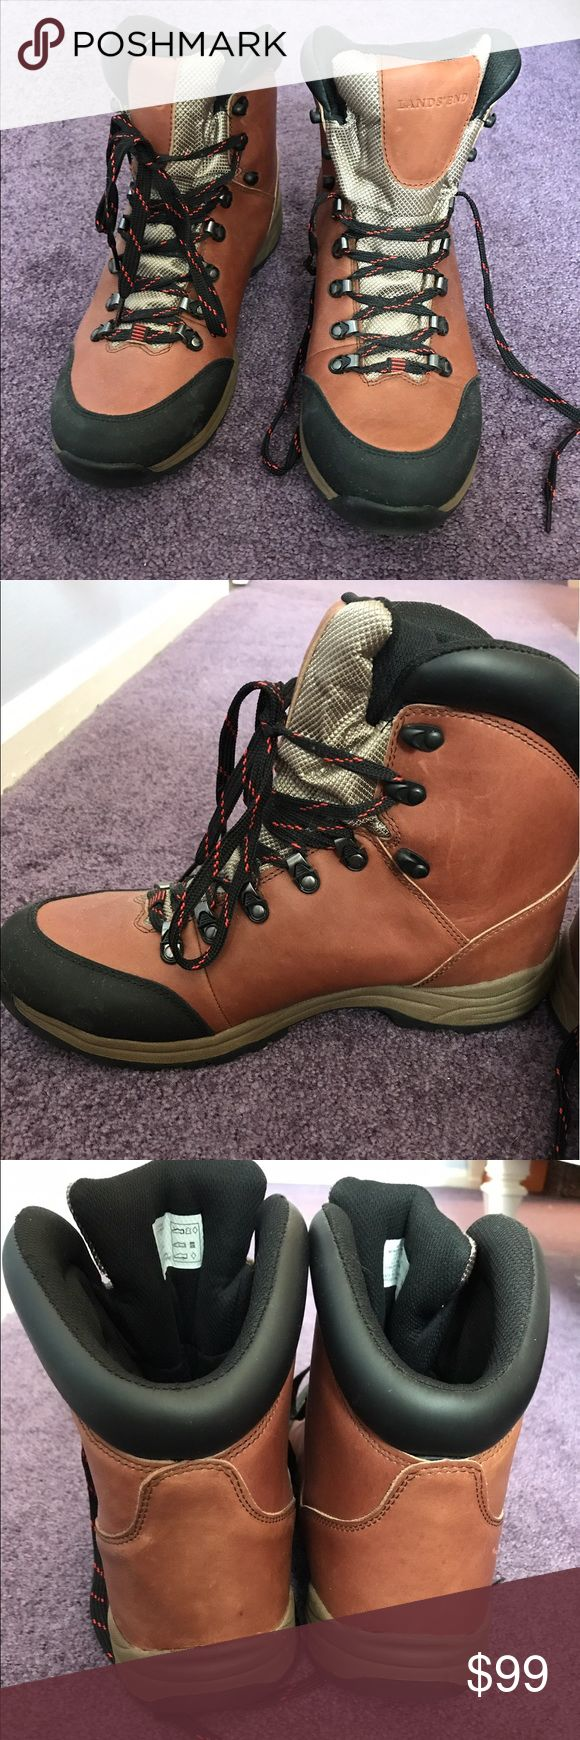 Lands End Men's Snow Boots Men's Waterproof snow boots. Never worn! Perfect condition! Lands' End Shoes Rain & Snow Boots